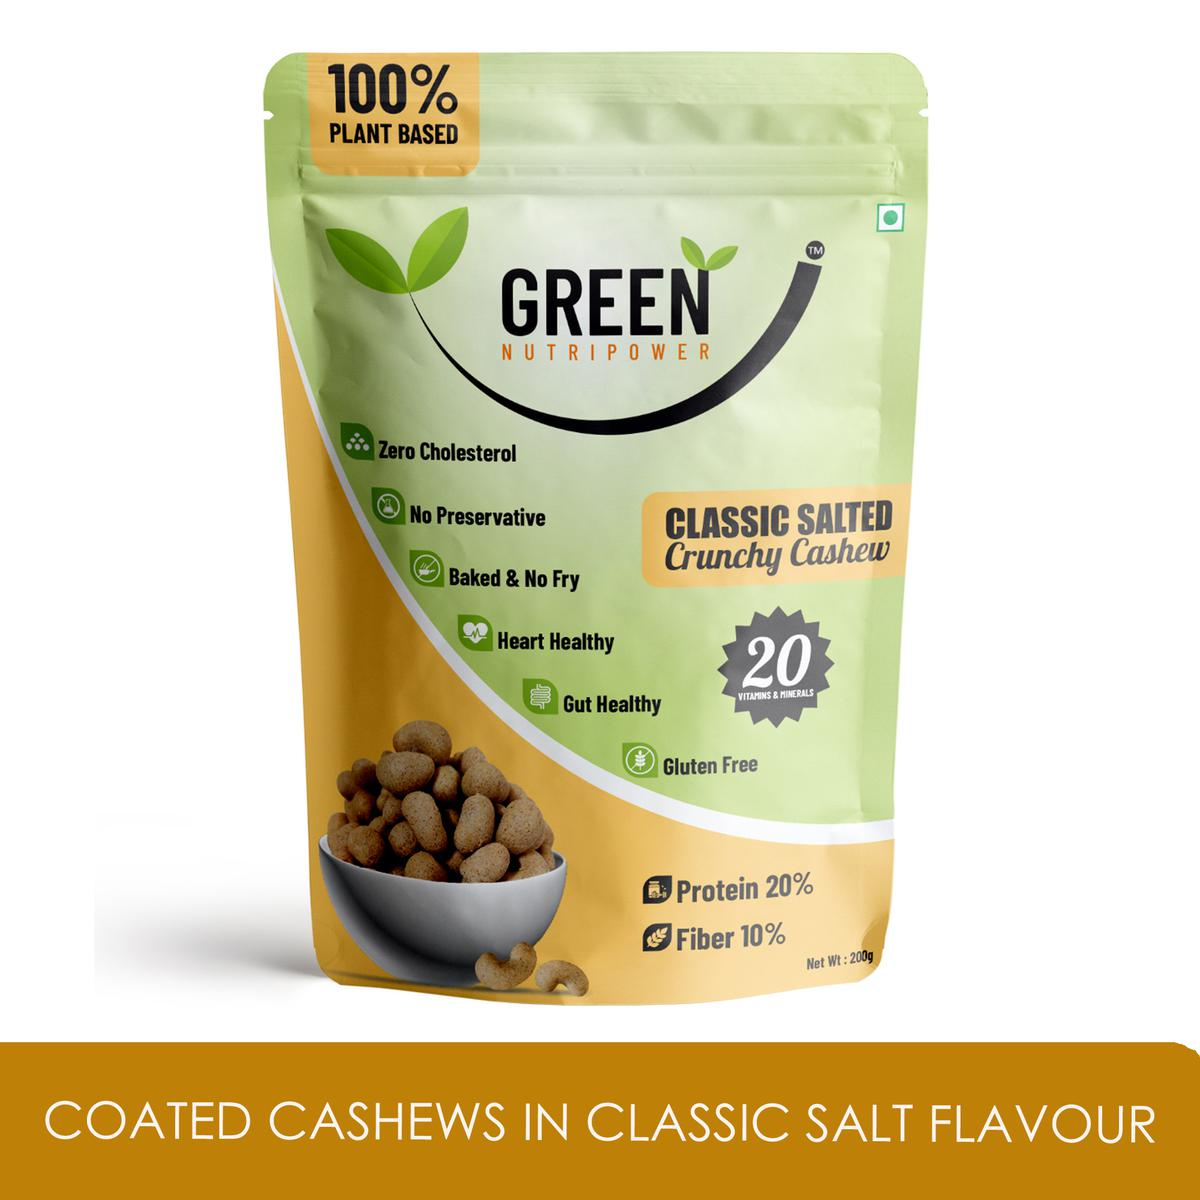 Green Nutripower - Coated Cashews in Classic Salt Flavour